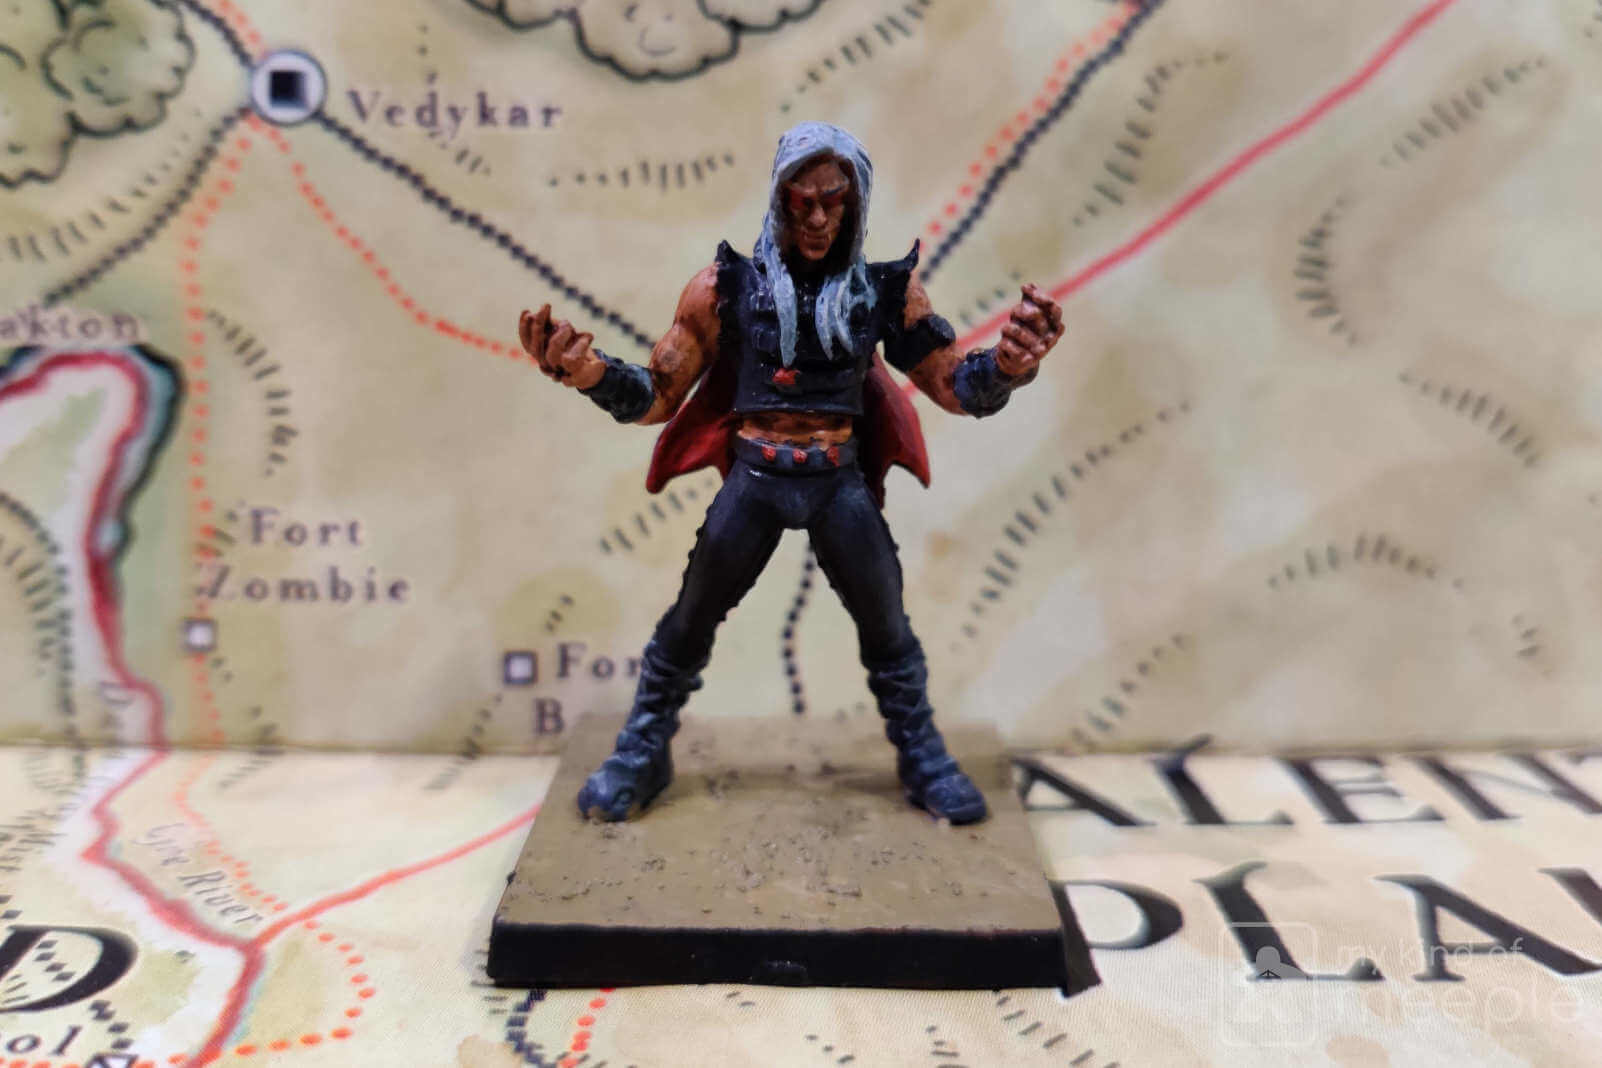 Chaotic Evil alignment miniature